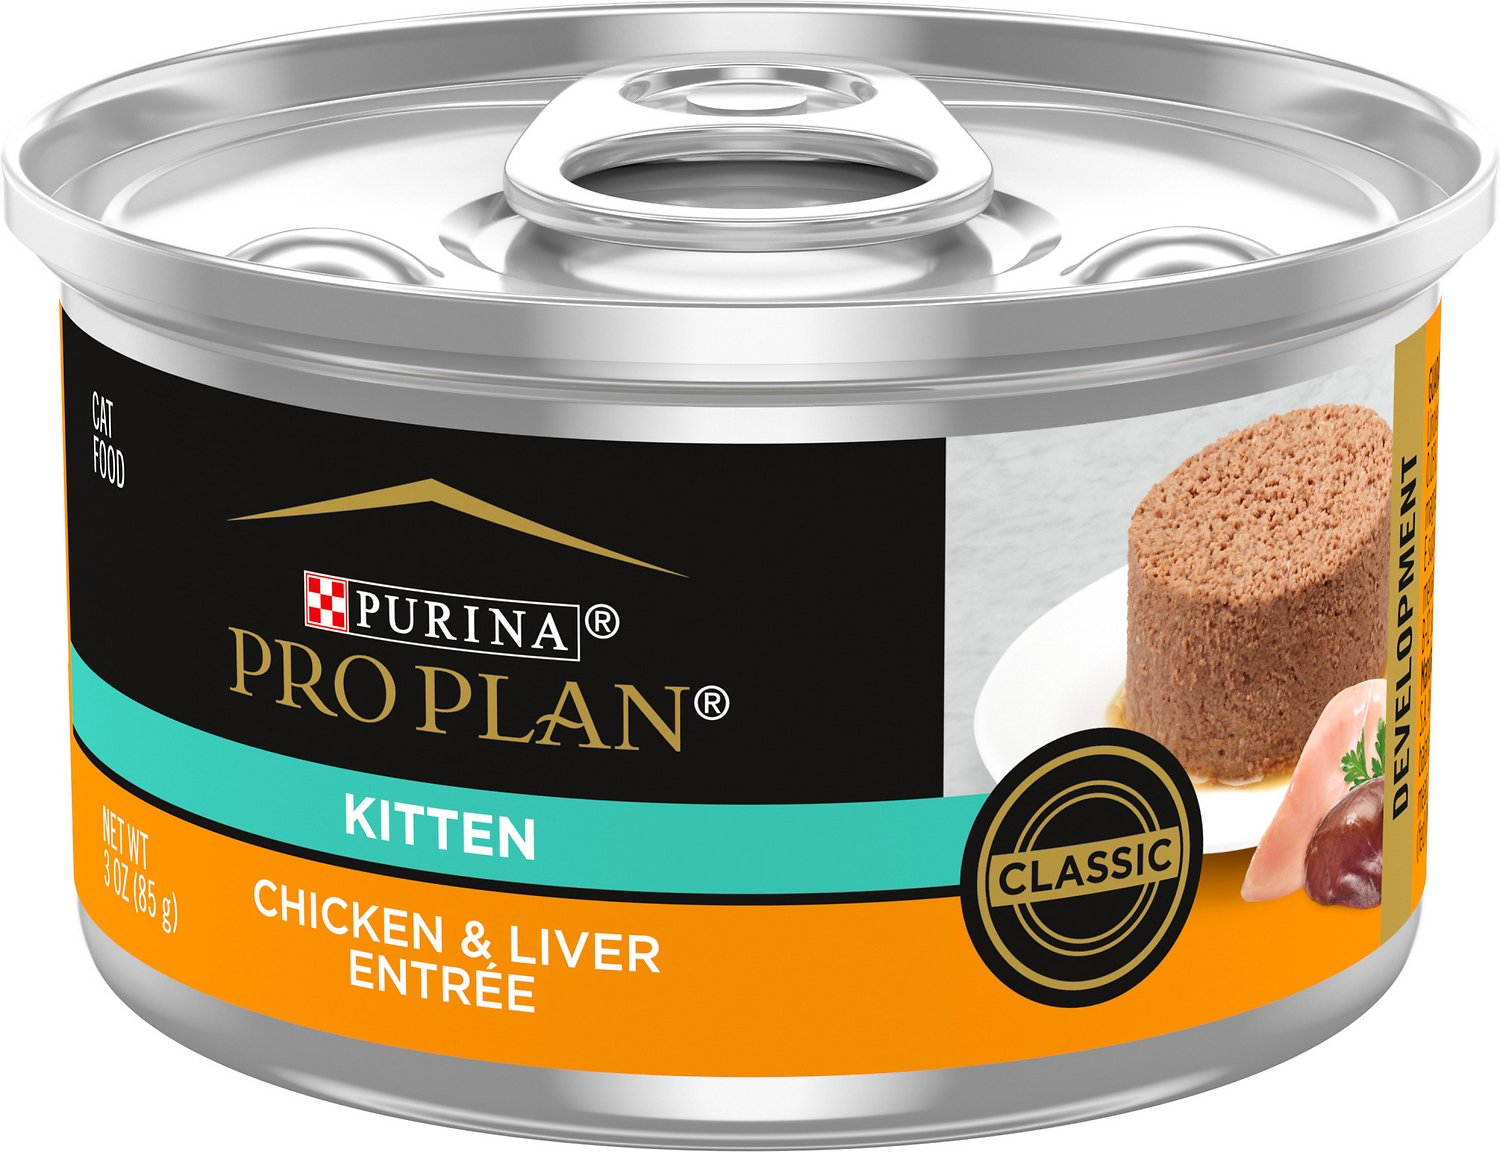 Browse Purina Pro Plan to find the right advanced formula for your pet. Recipes are crafted to help your furry pal excel in everyday activities and maintain optimal health. Shop high protein, grain-free, and extra-care formulas at Petco today!